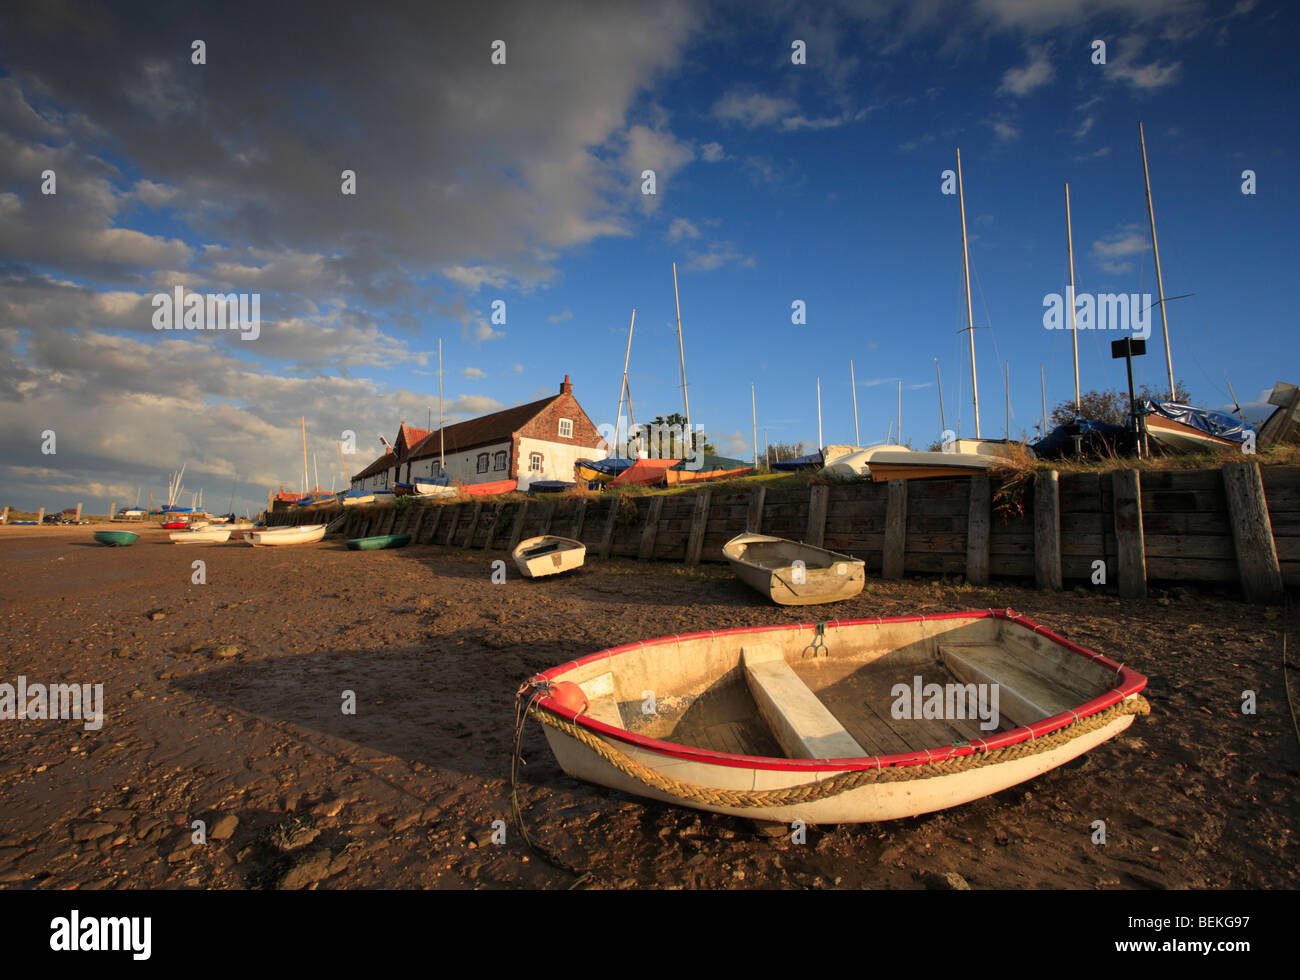 Boats and the Chandlery at Burnham Overy Staithe on the North Norfolk coast, England. - Stock Image